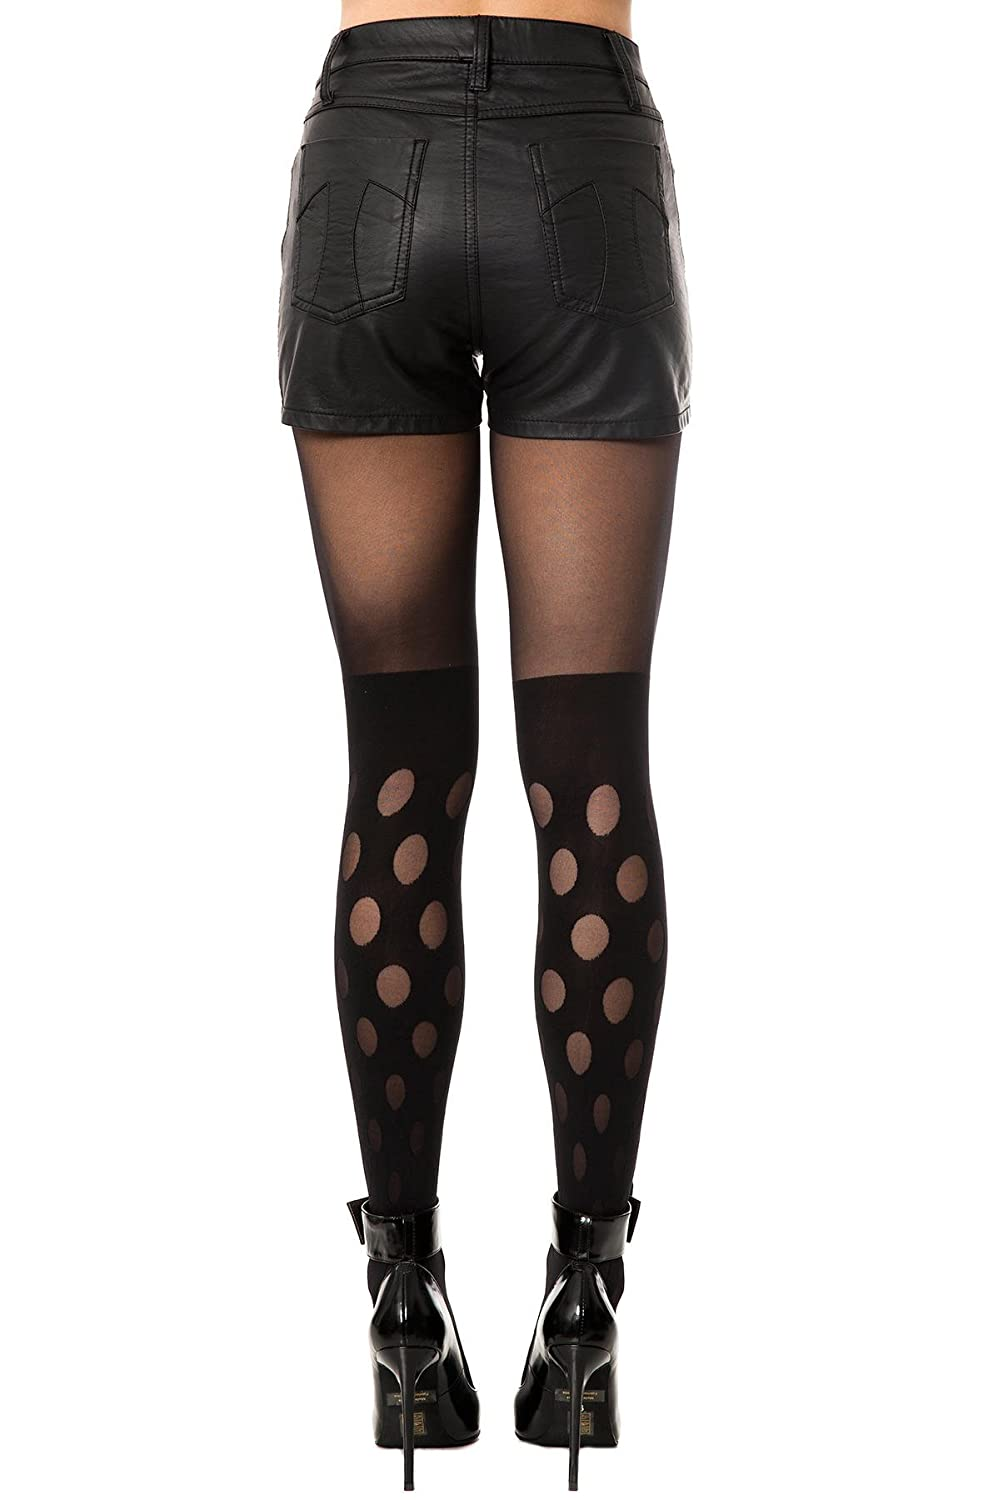 fe80a03f0de House of Holland Women s Reverse Polka Dot Tights One Size Black at Amazon  Women s Clothing store